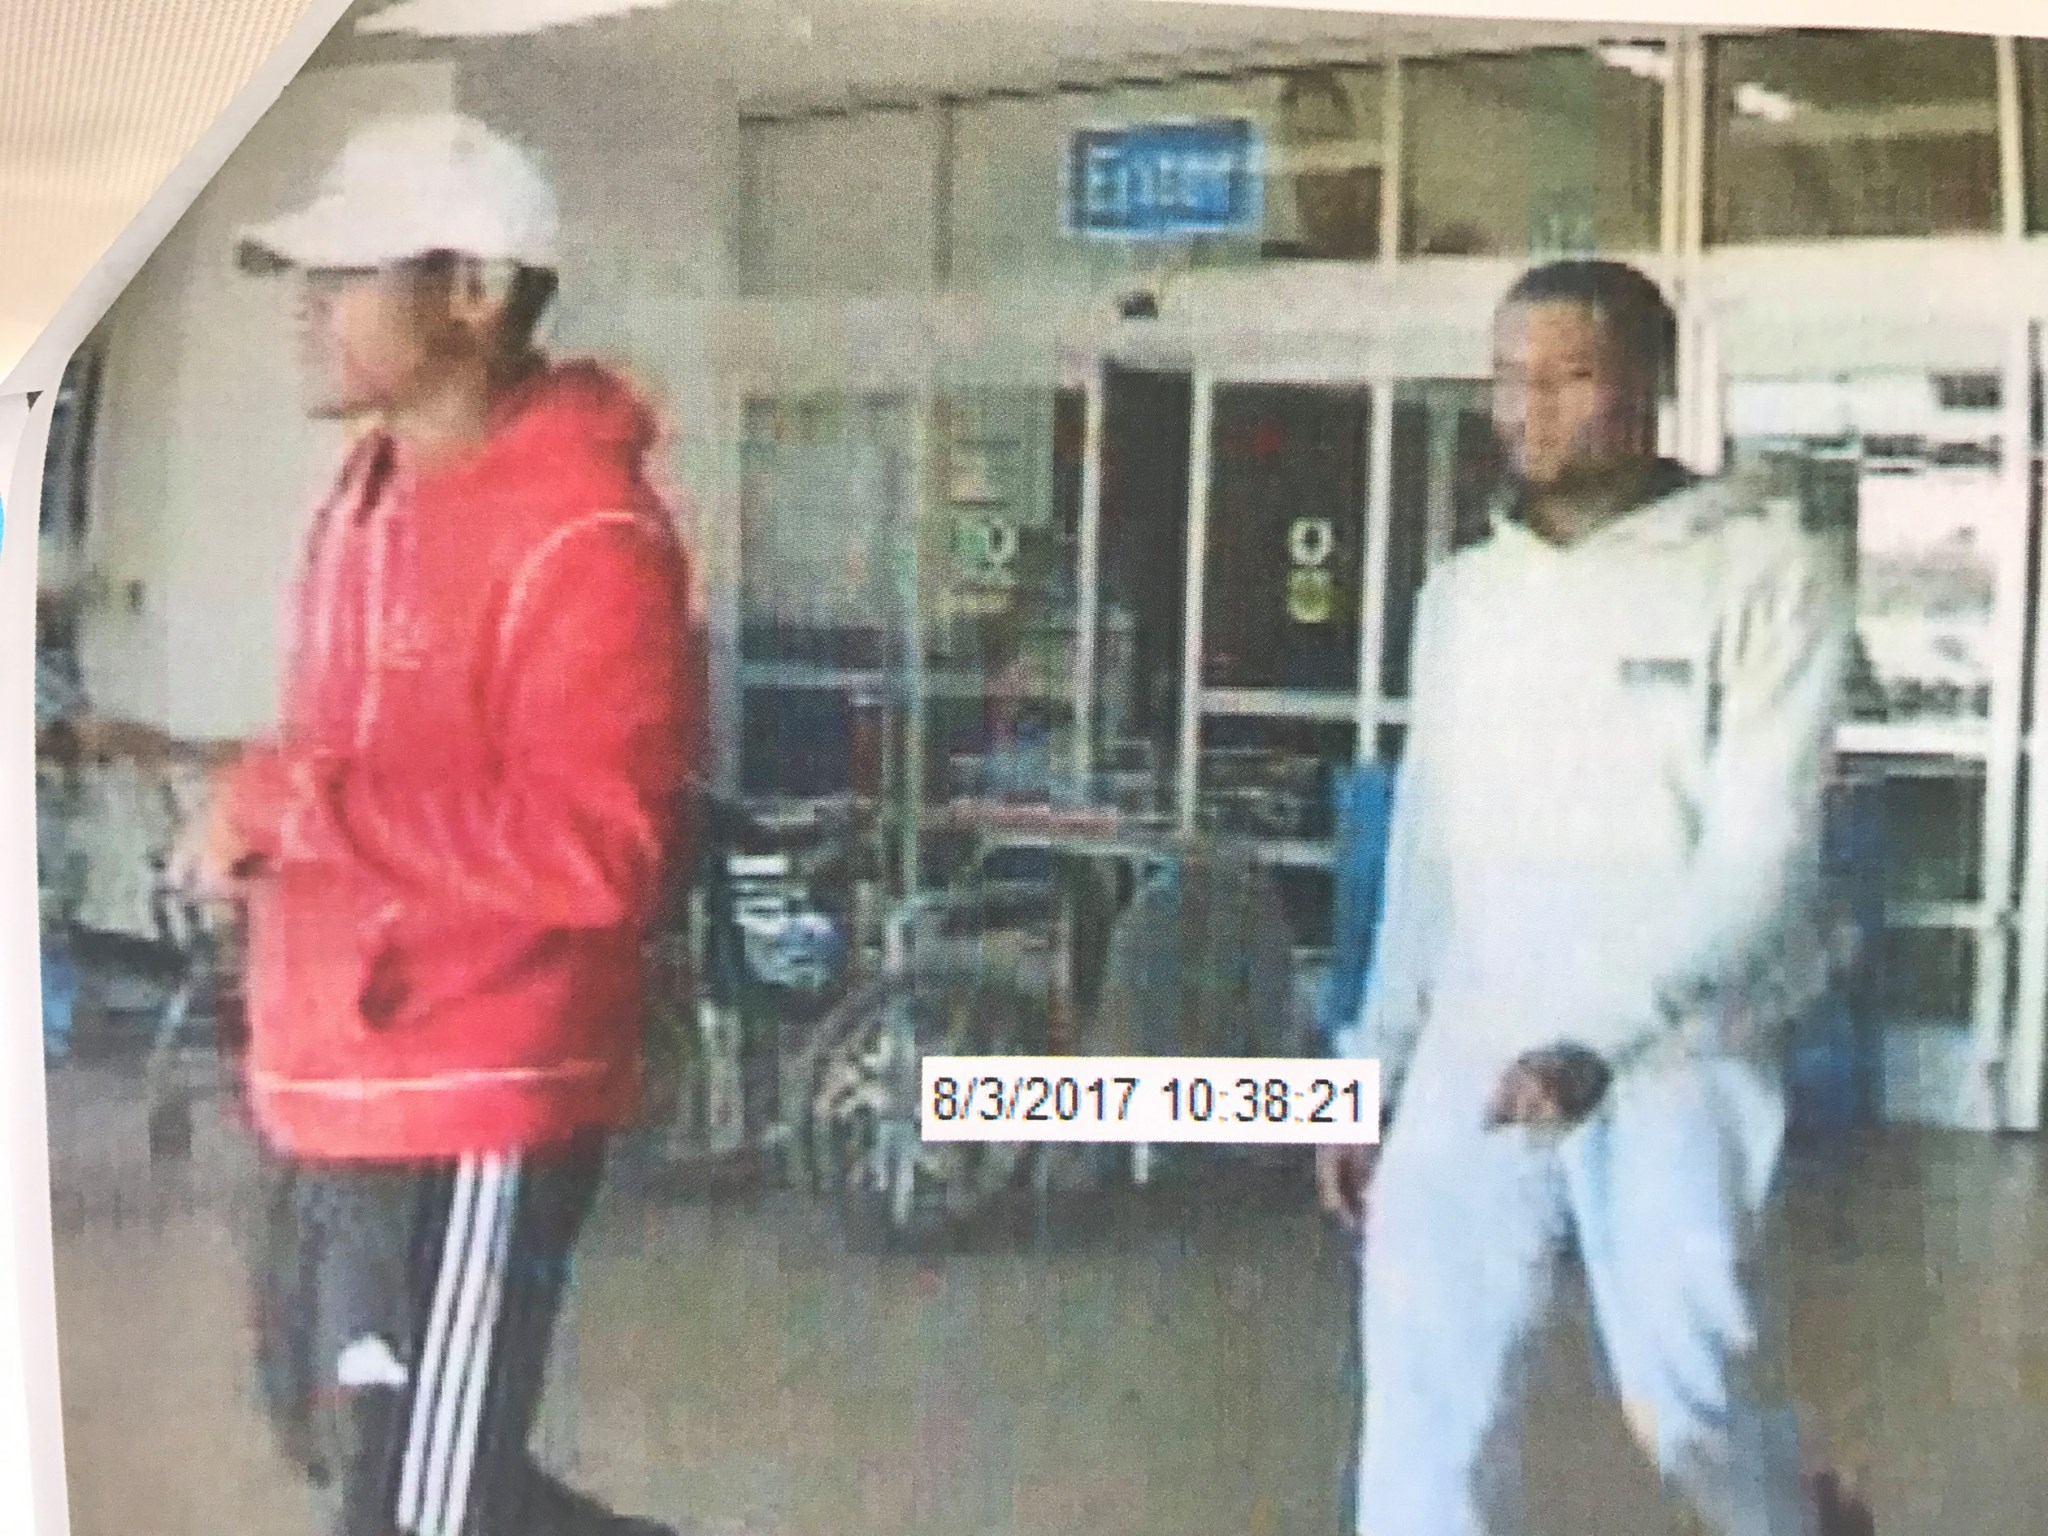 Surveillance video shows two men believed to be connected to an armed robbery August 3 at an Oklahoma City business. (Oklahoma City Police Department)